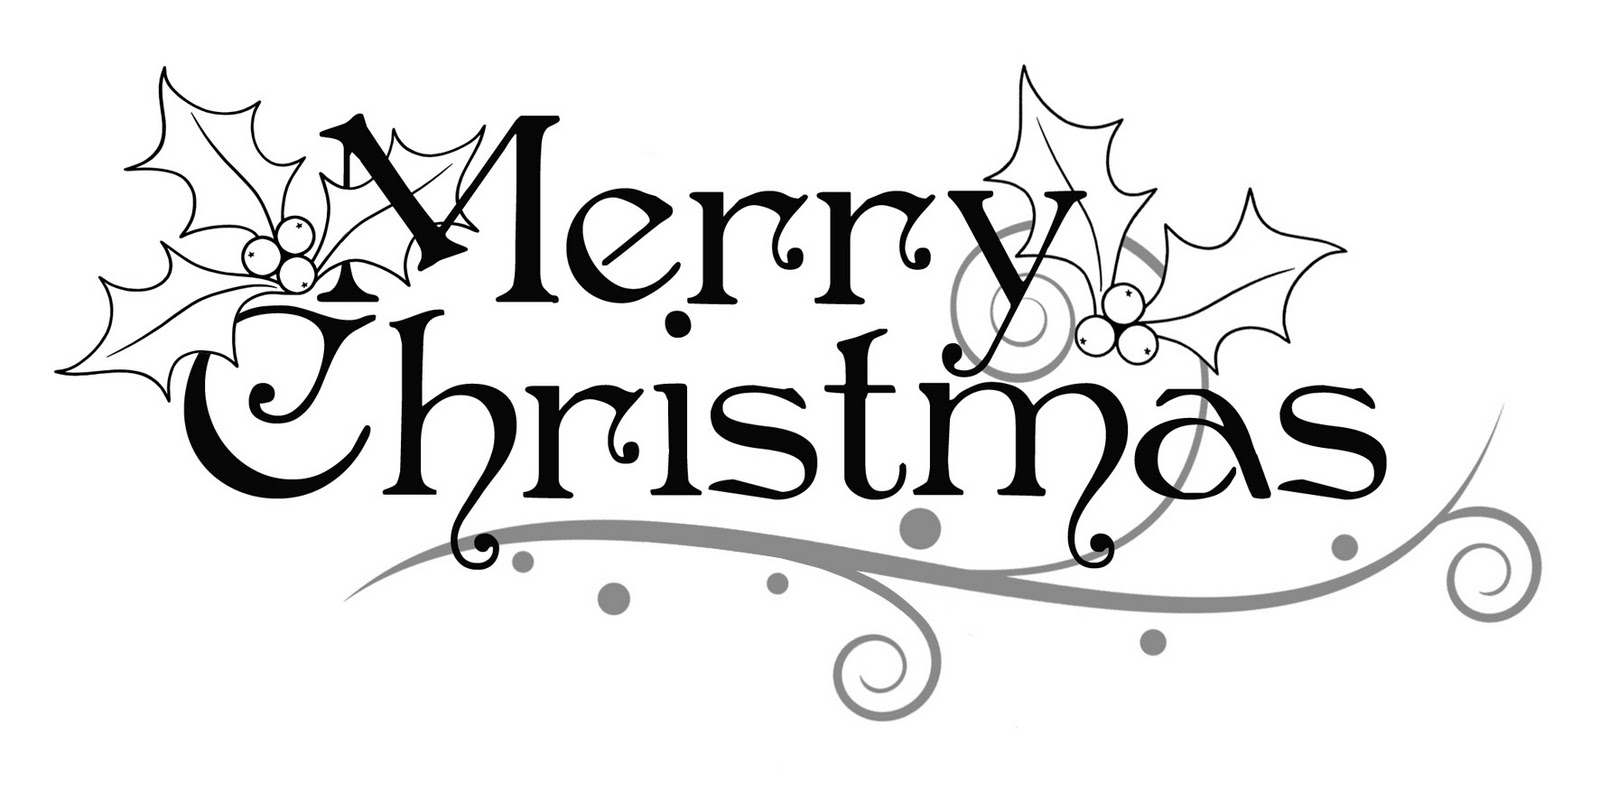 1600x791 Merry Christmas Text Images Library Vector Clipart Photo